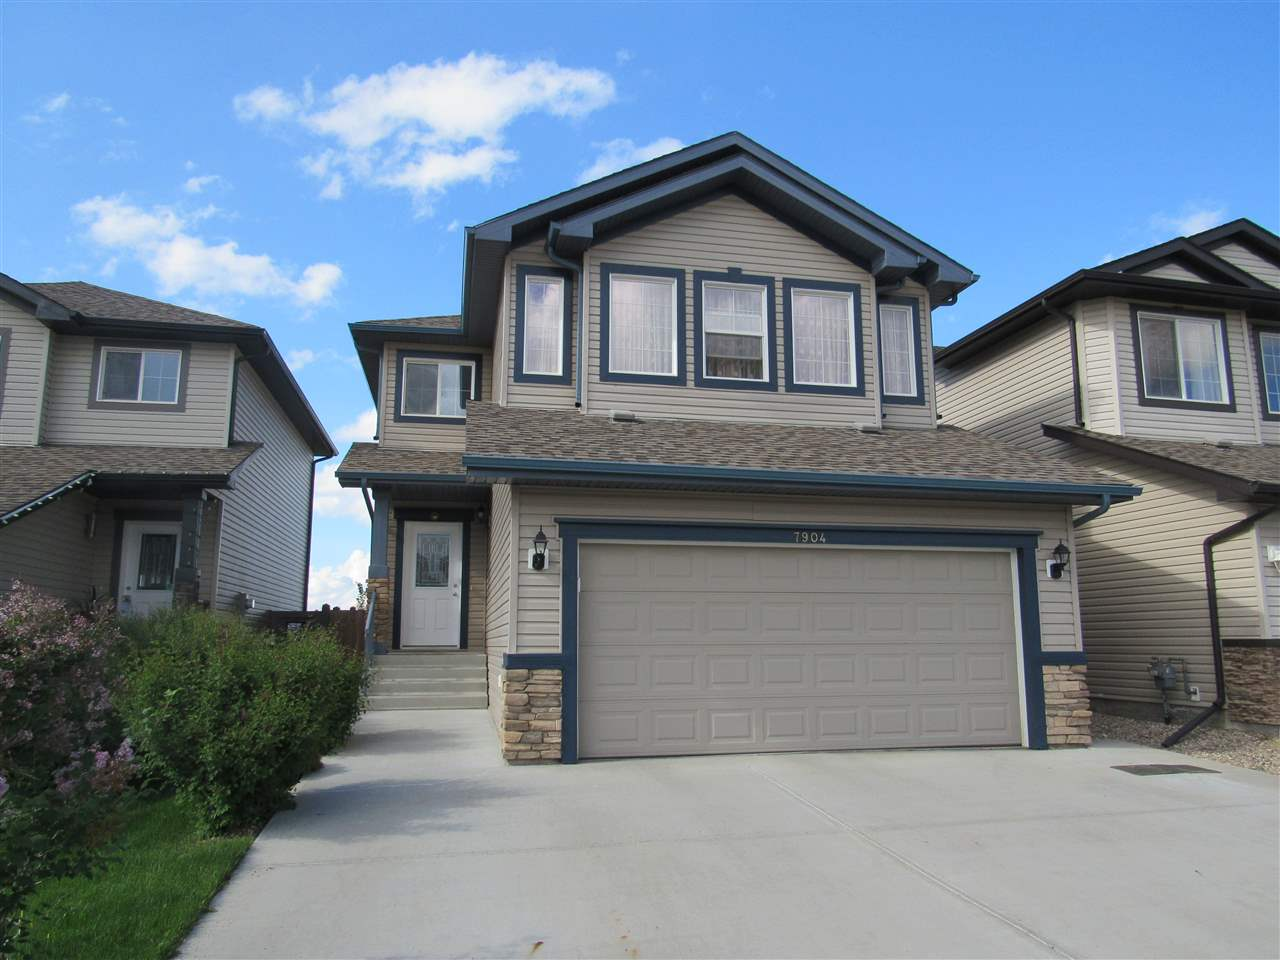 Photo 1: 7904 173 Avenue in Edmonton: Zone 28 House for sale : MLS(r) # E4058384